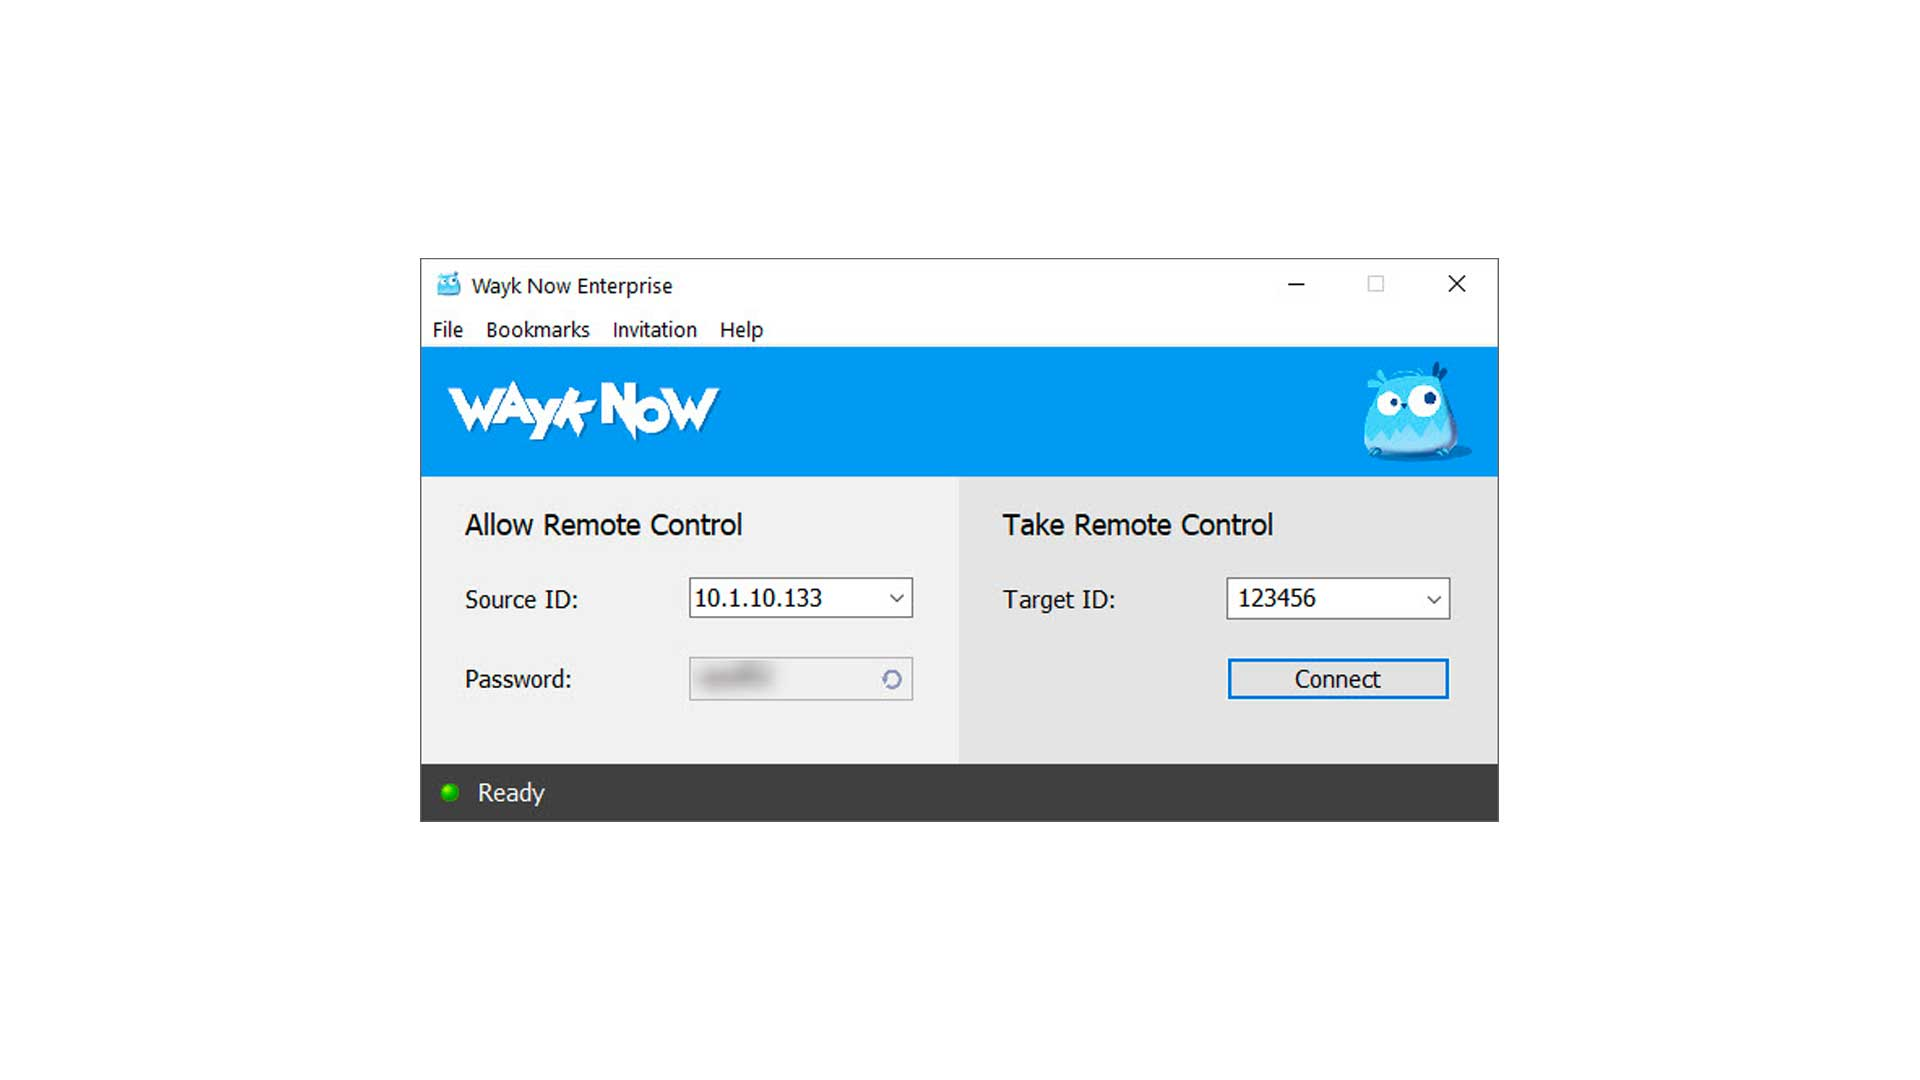 A Simple to Use Interface - Wayk Now